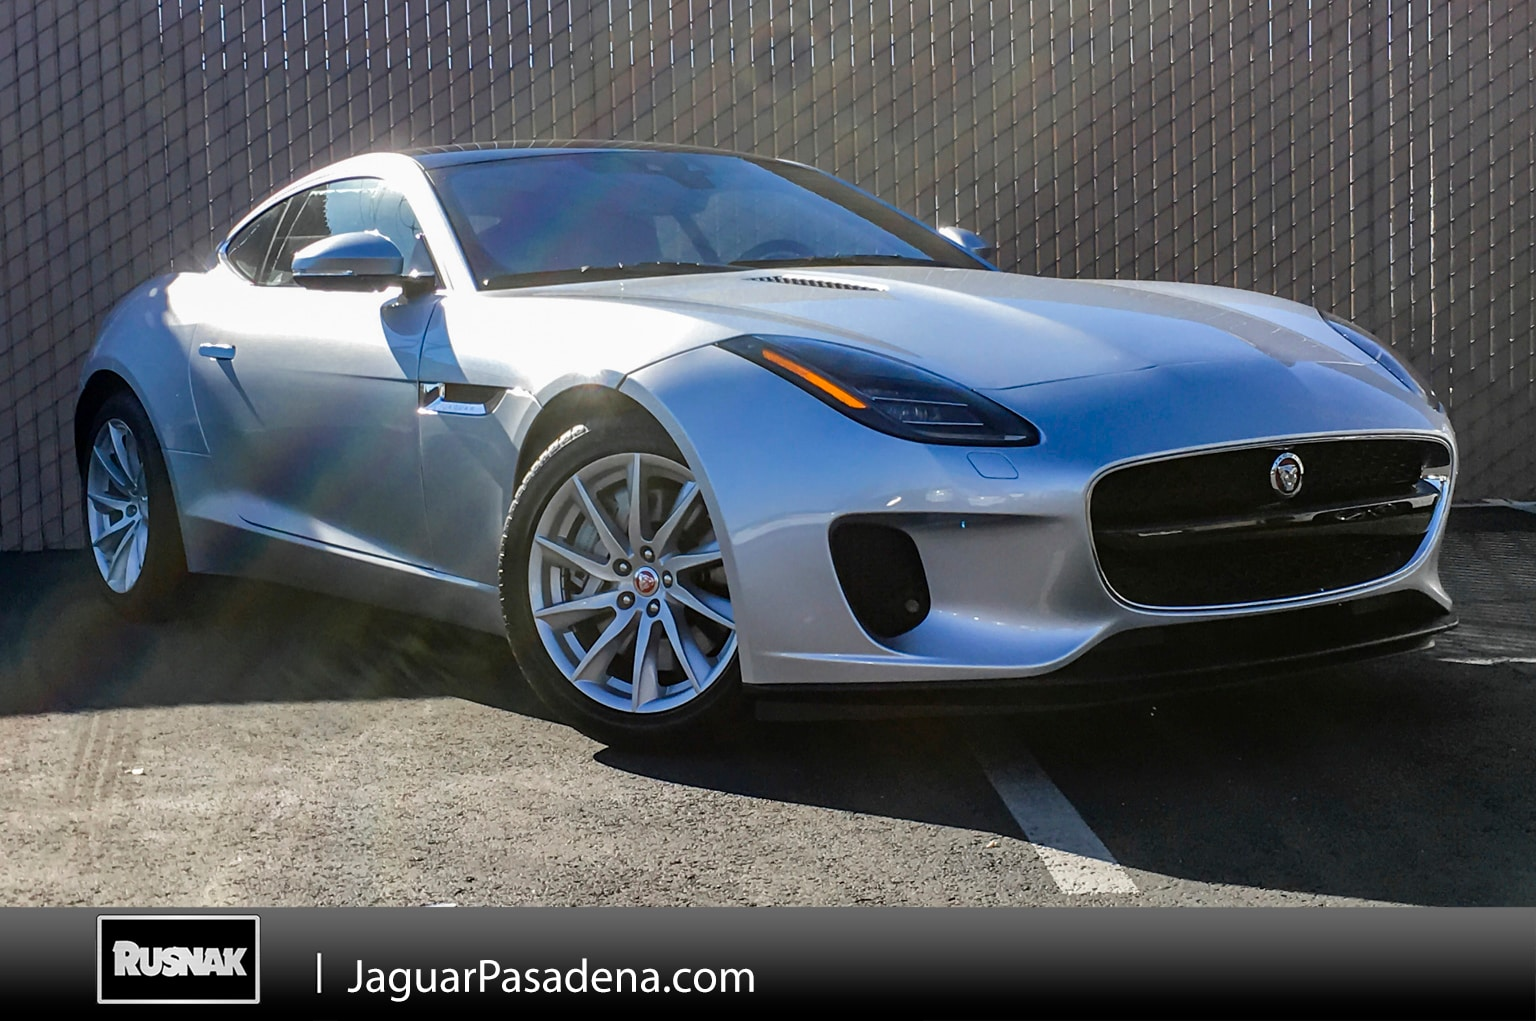 New 2019 Jaguar F-TYPE Coupe Coupe For Sale Los Angeles California